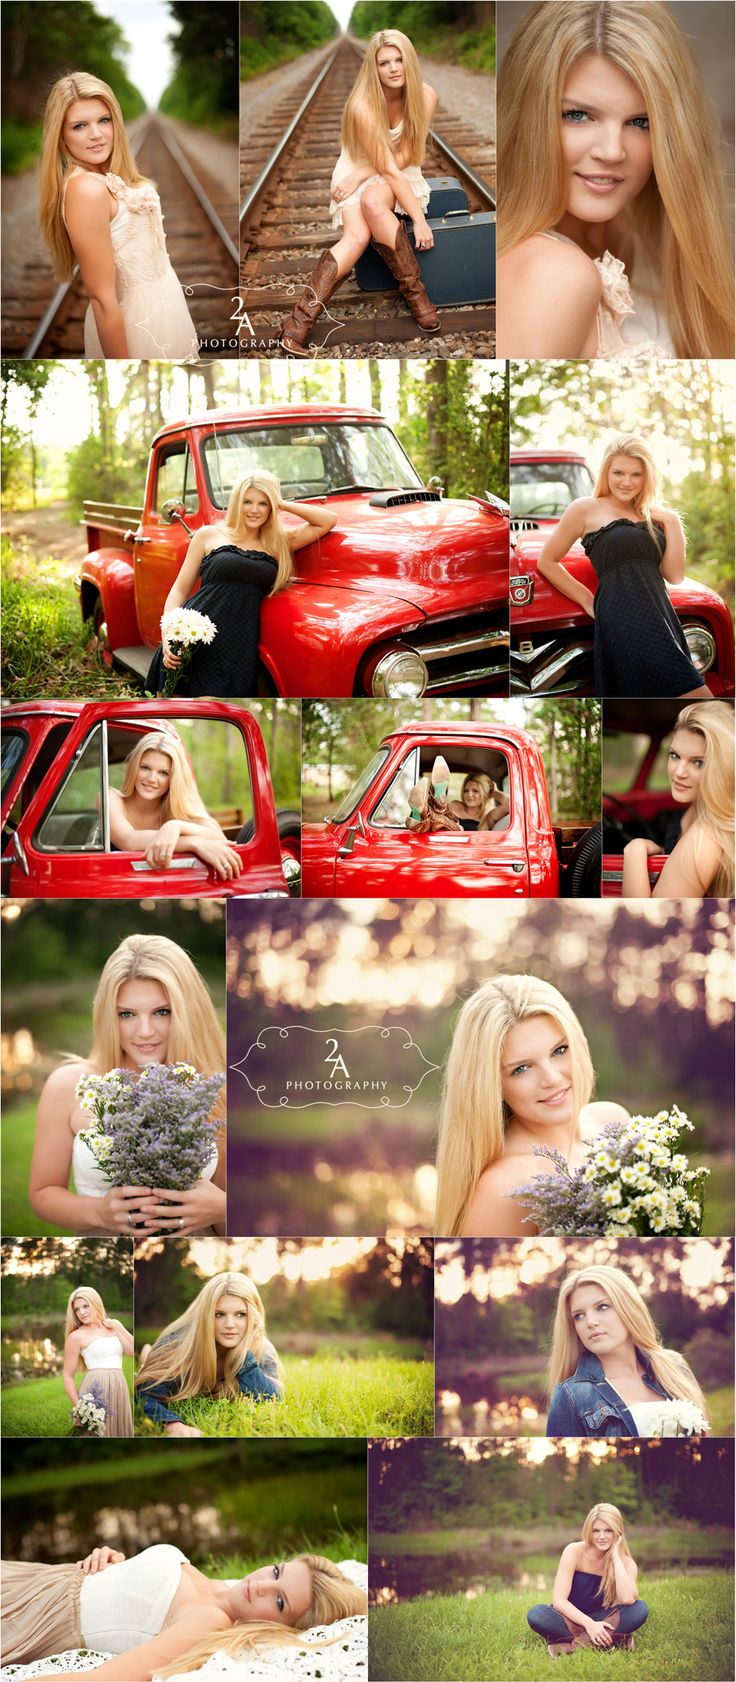 Love love loveeee the bouquet!  I don't see that in senior pictures often.